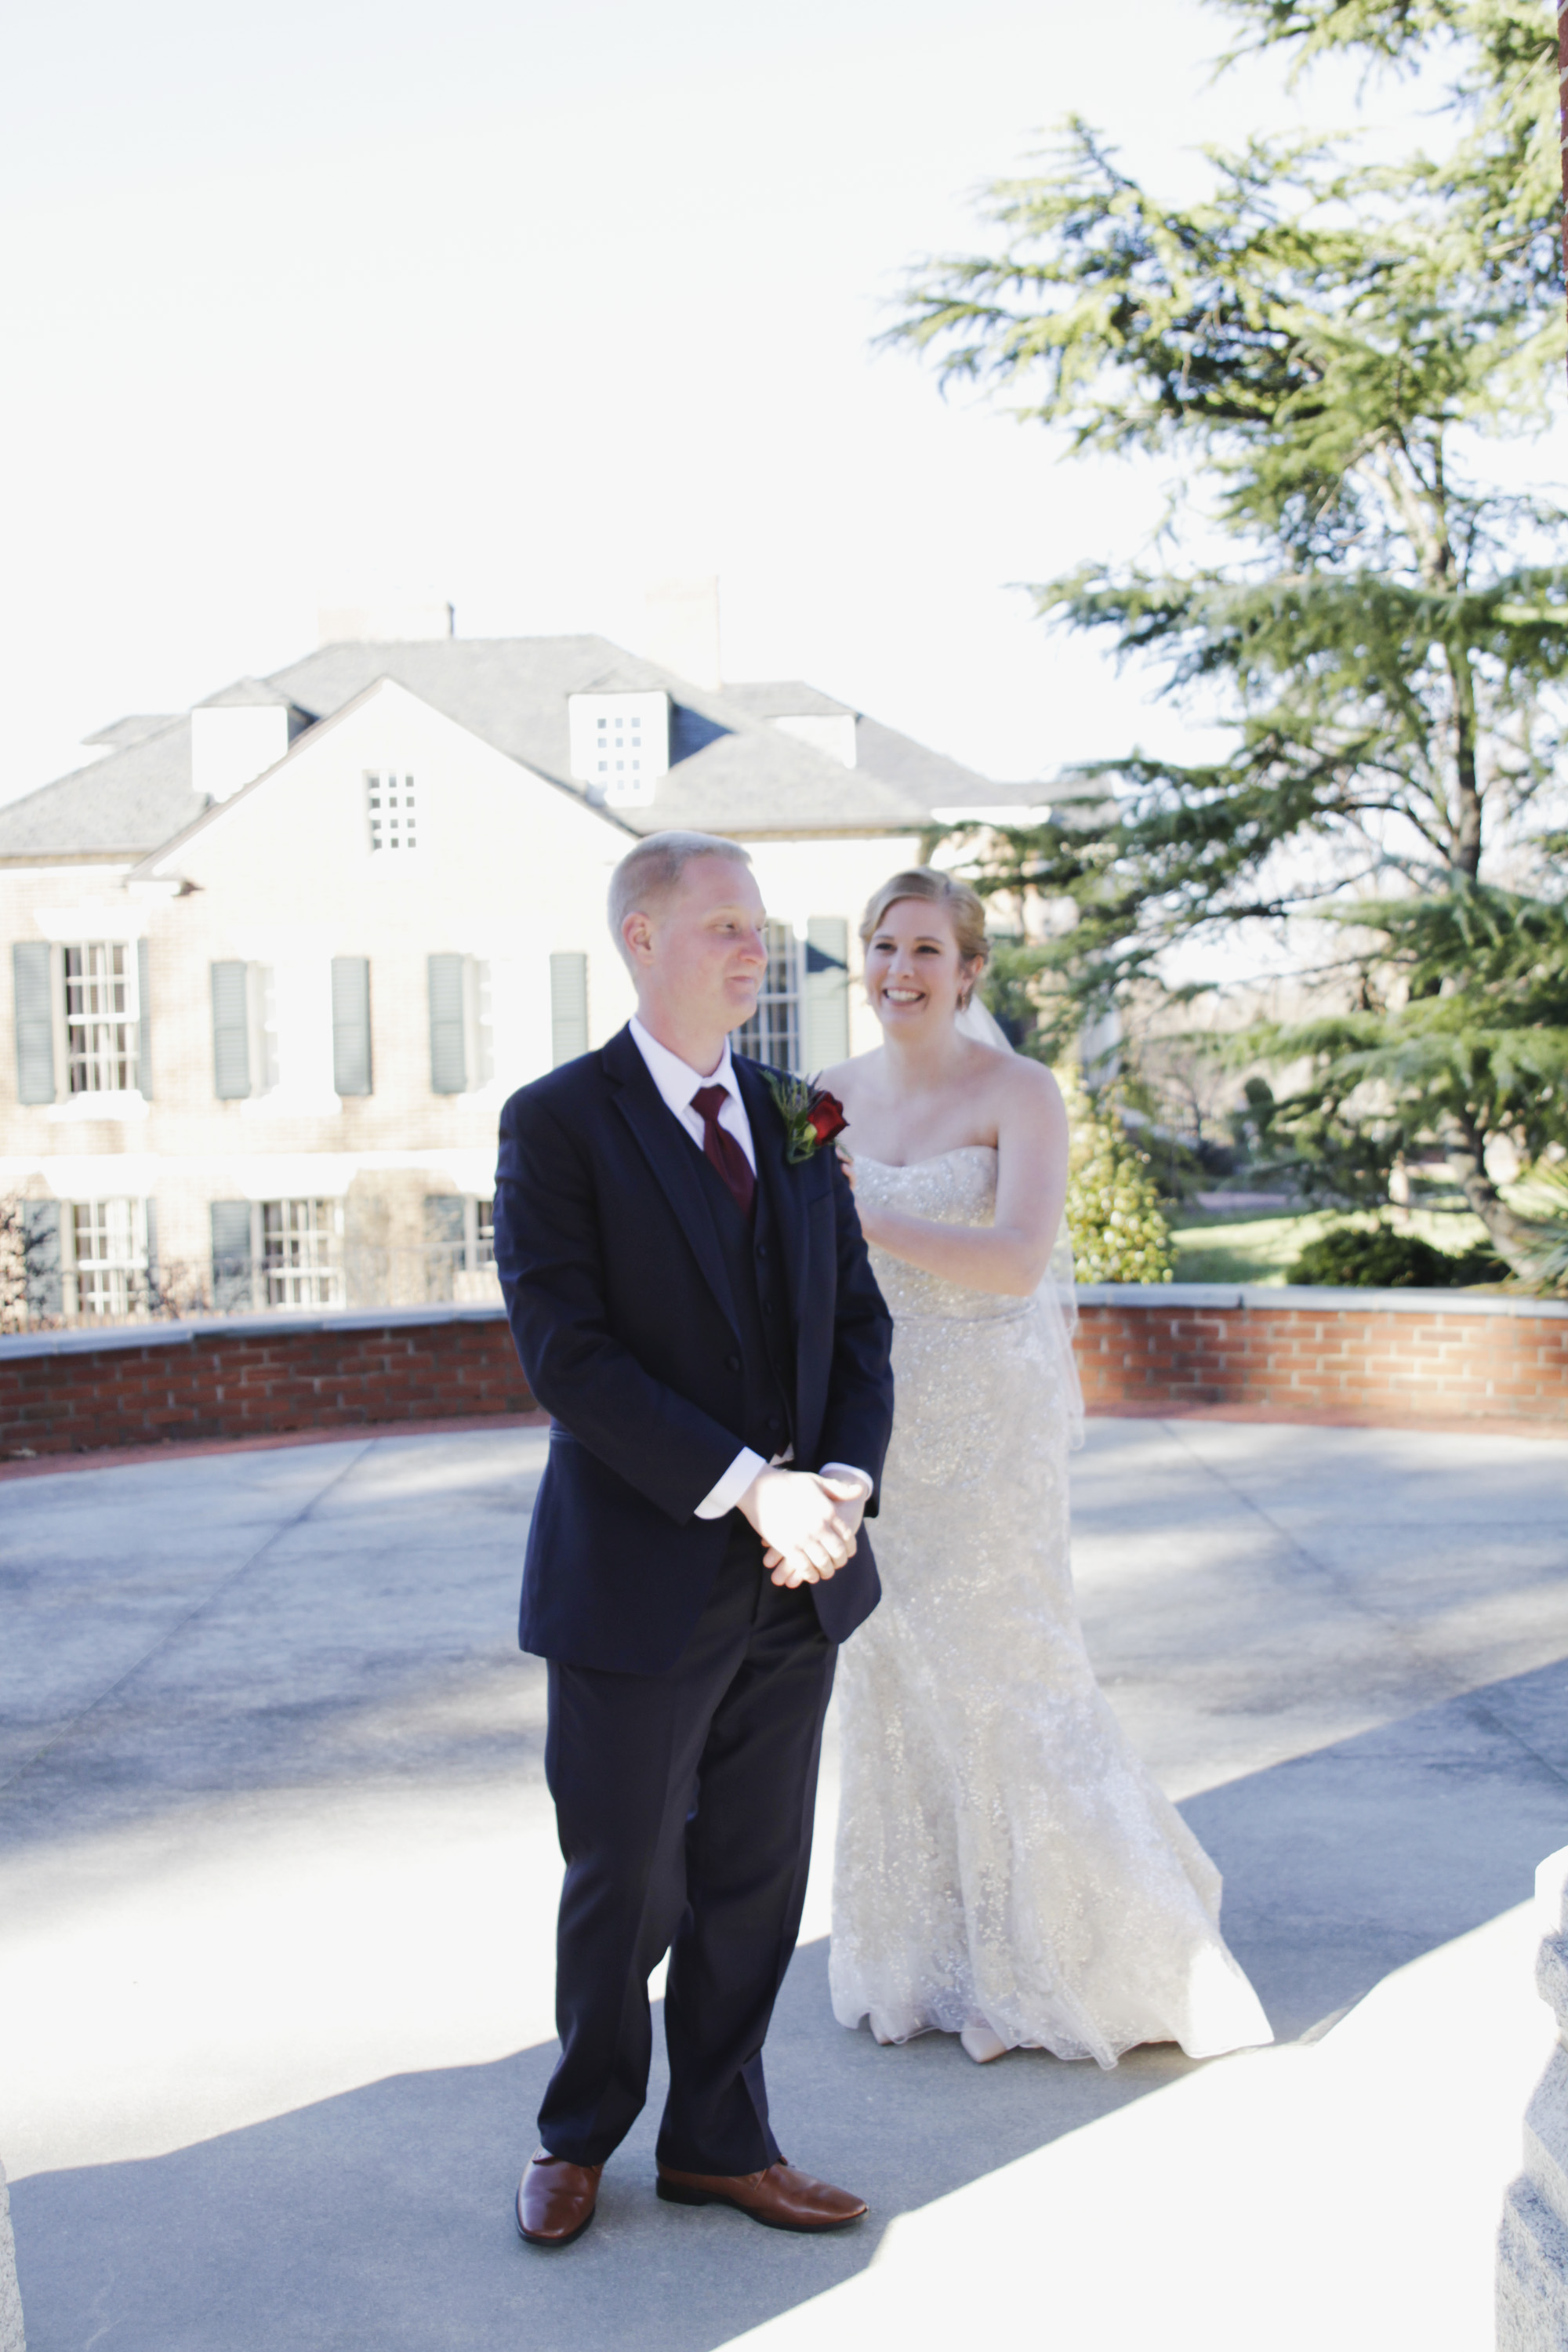 First Look UNCG Wedding Photography by Greensboro Winston Salem, NC Photographer